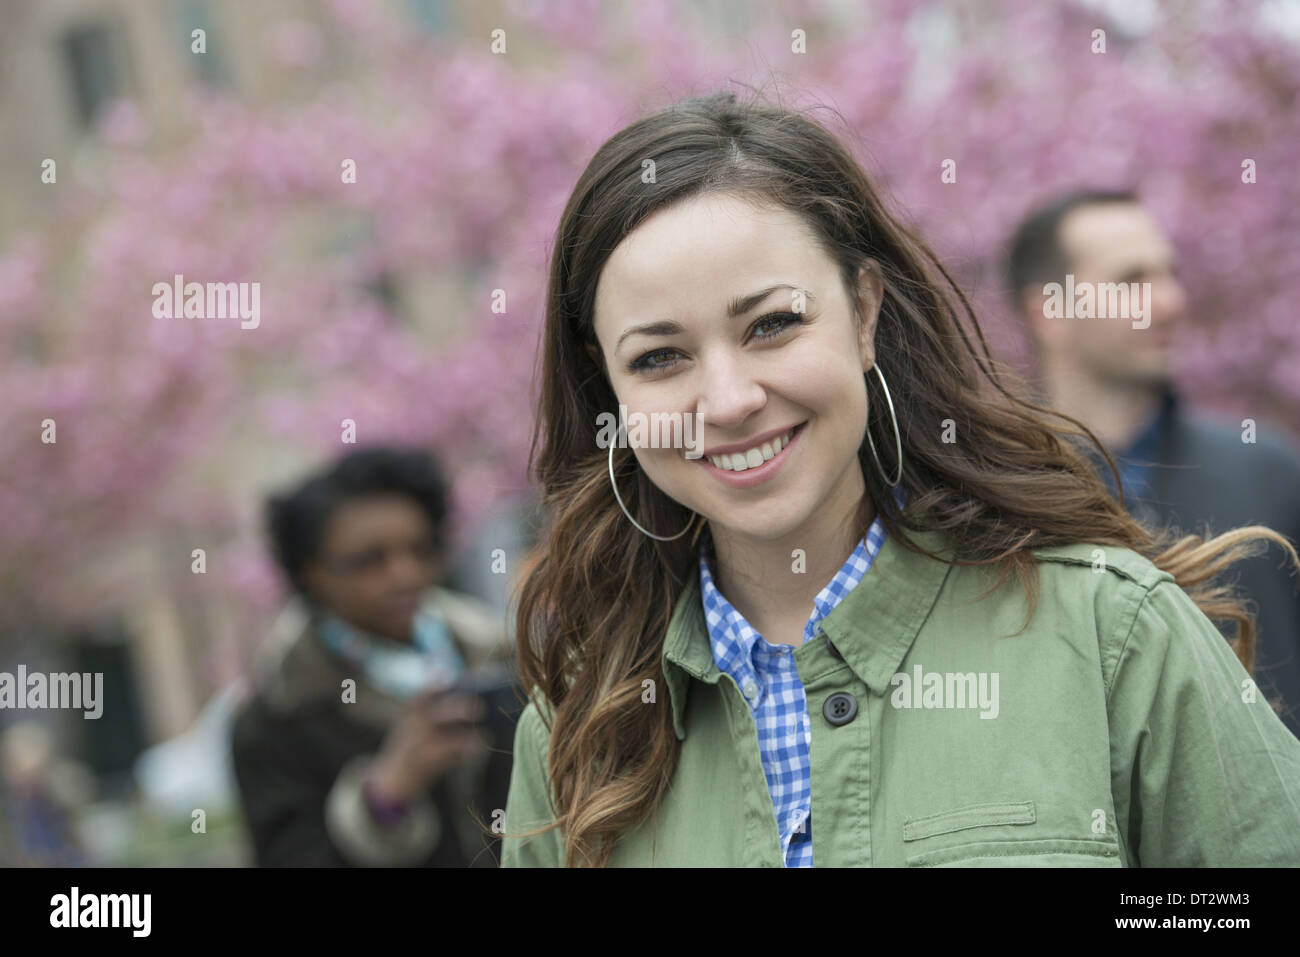 Cherry blossom trees in the park A young woman in an open necked shirt smiling and looking at the camera - Stock Image